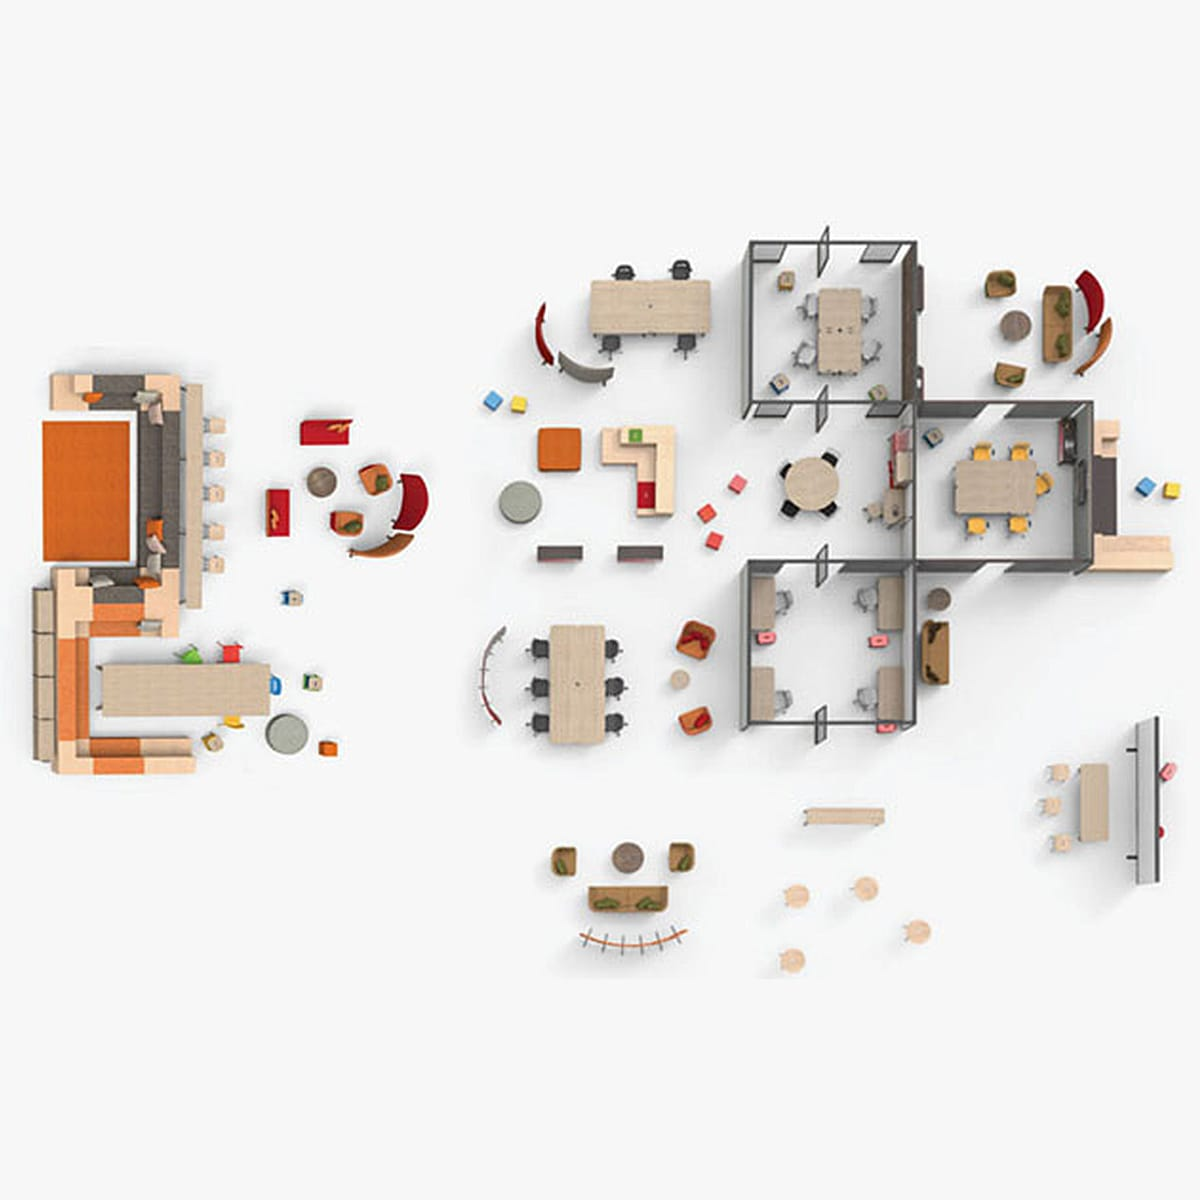 Planning with Knoll, Courtesy of Knoll, Inc.